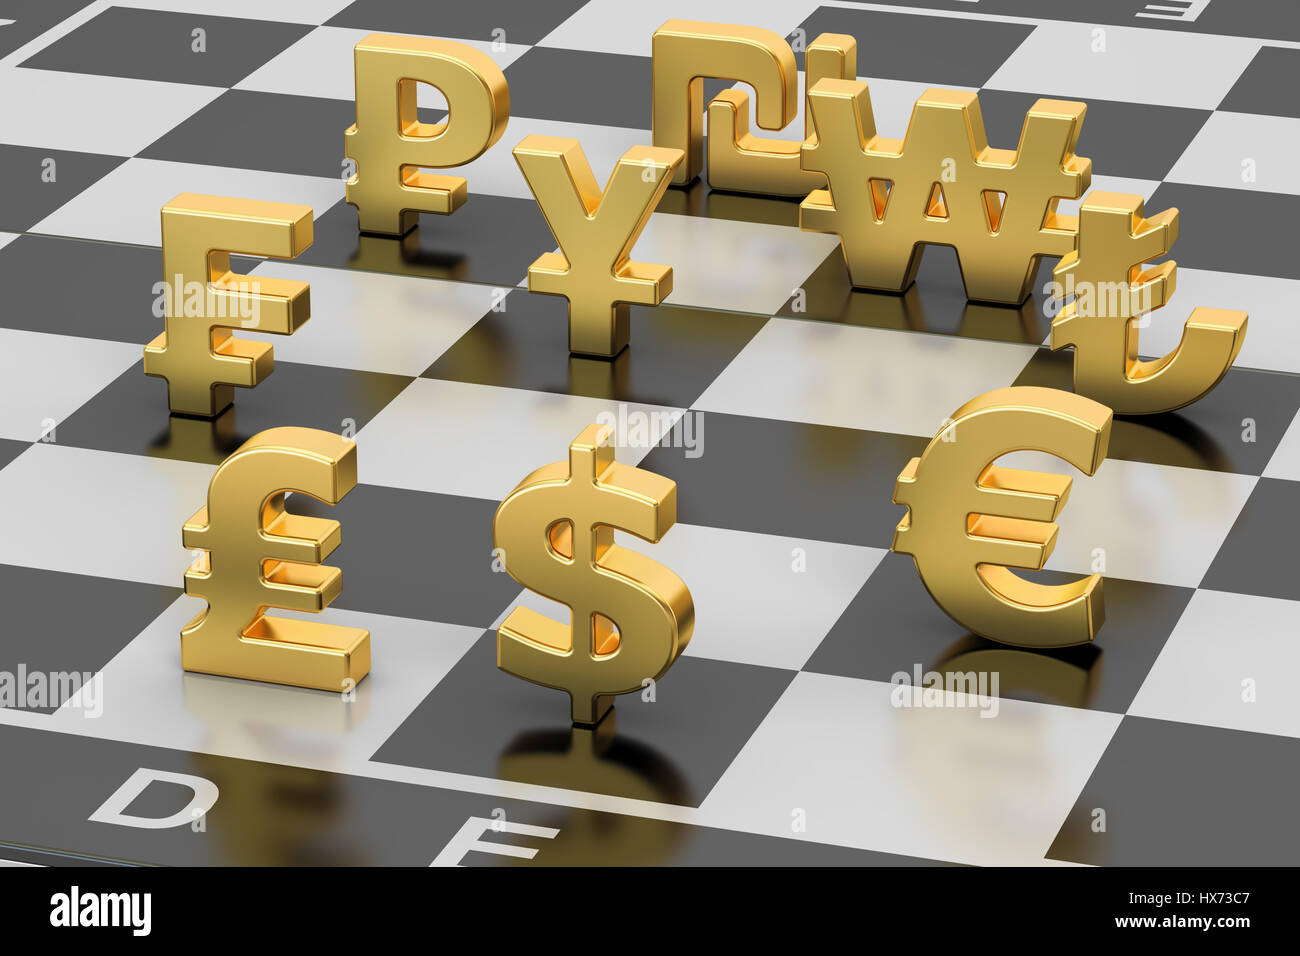 Money concept currency symbols on chess board 3d rendering stock money concept currency symbols on chess board 3d rendering biocorpaavc Gallery